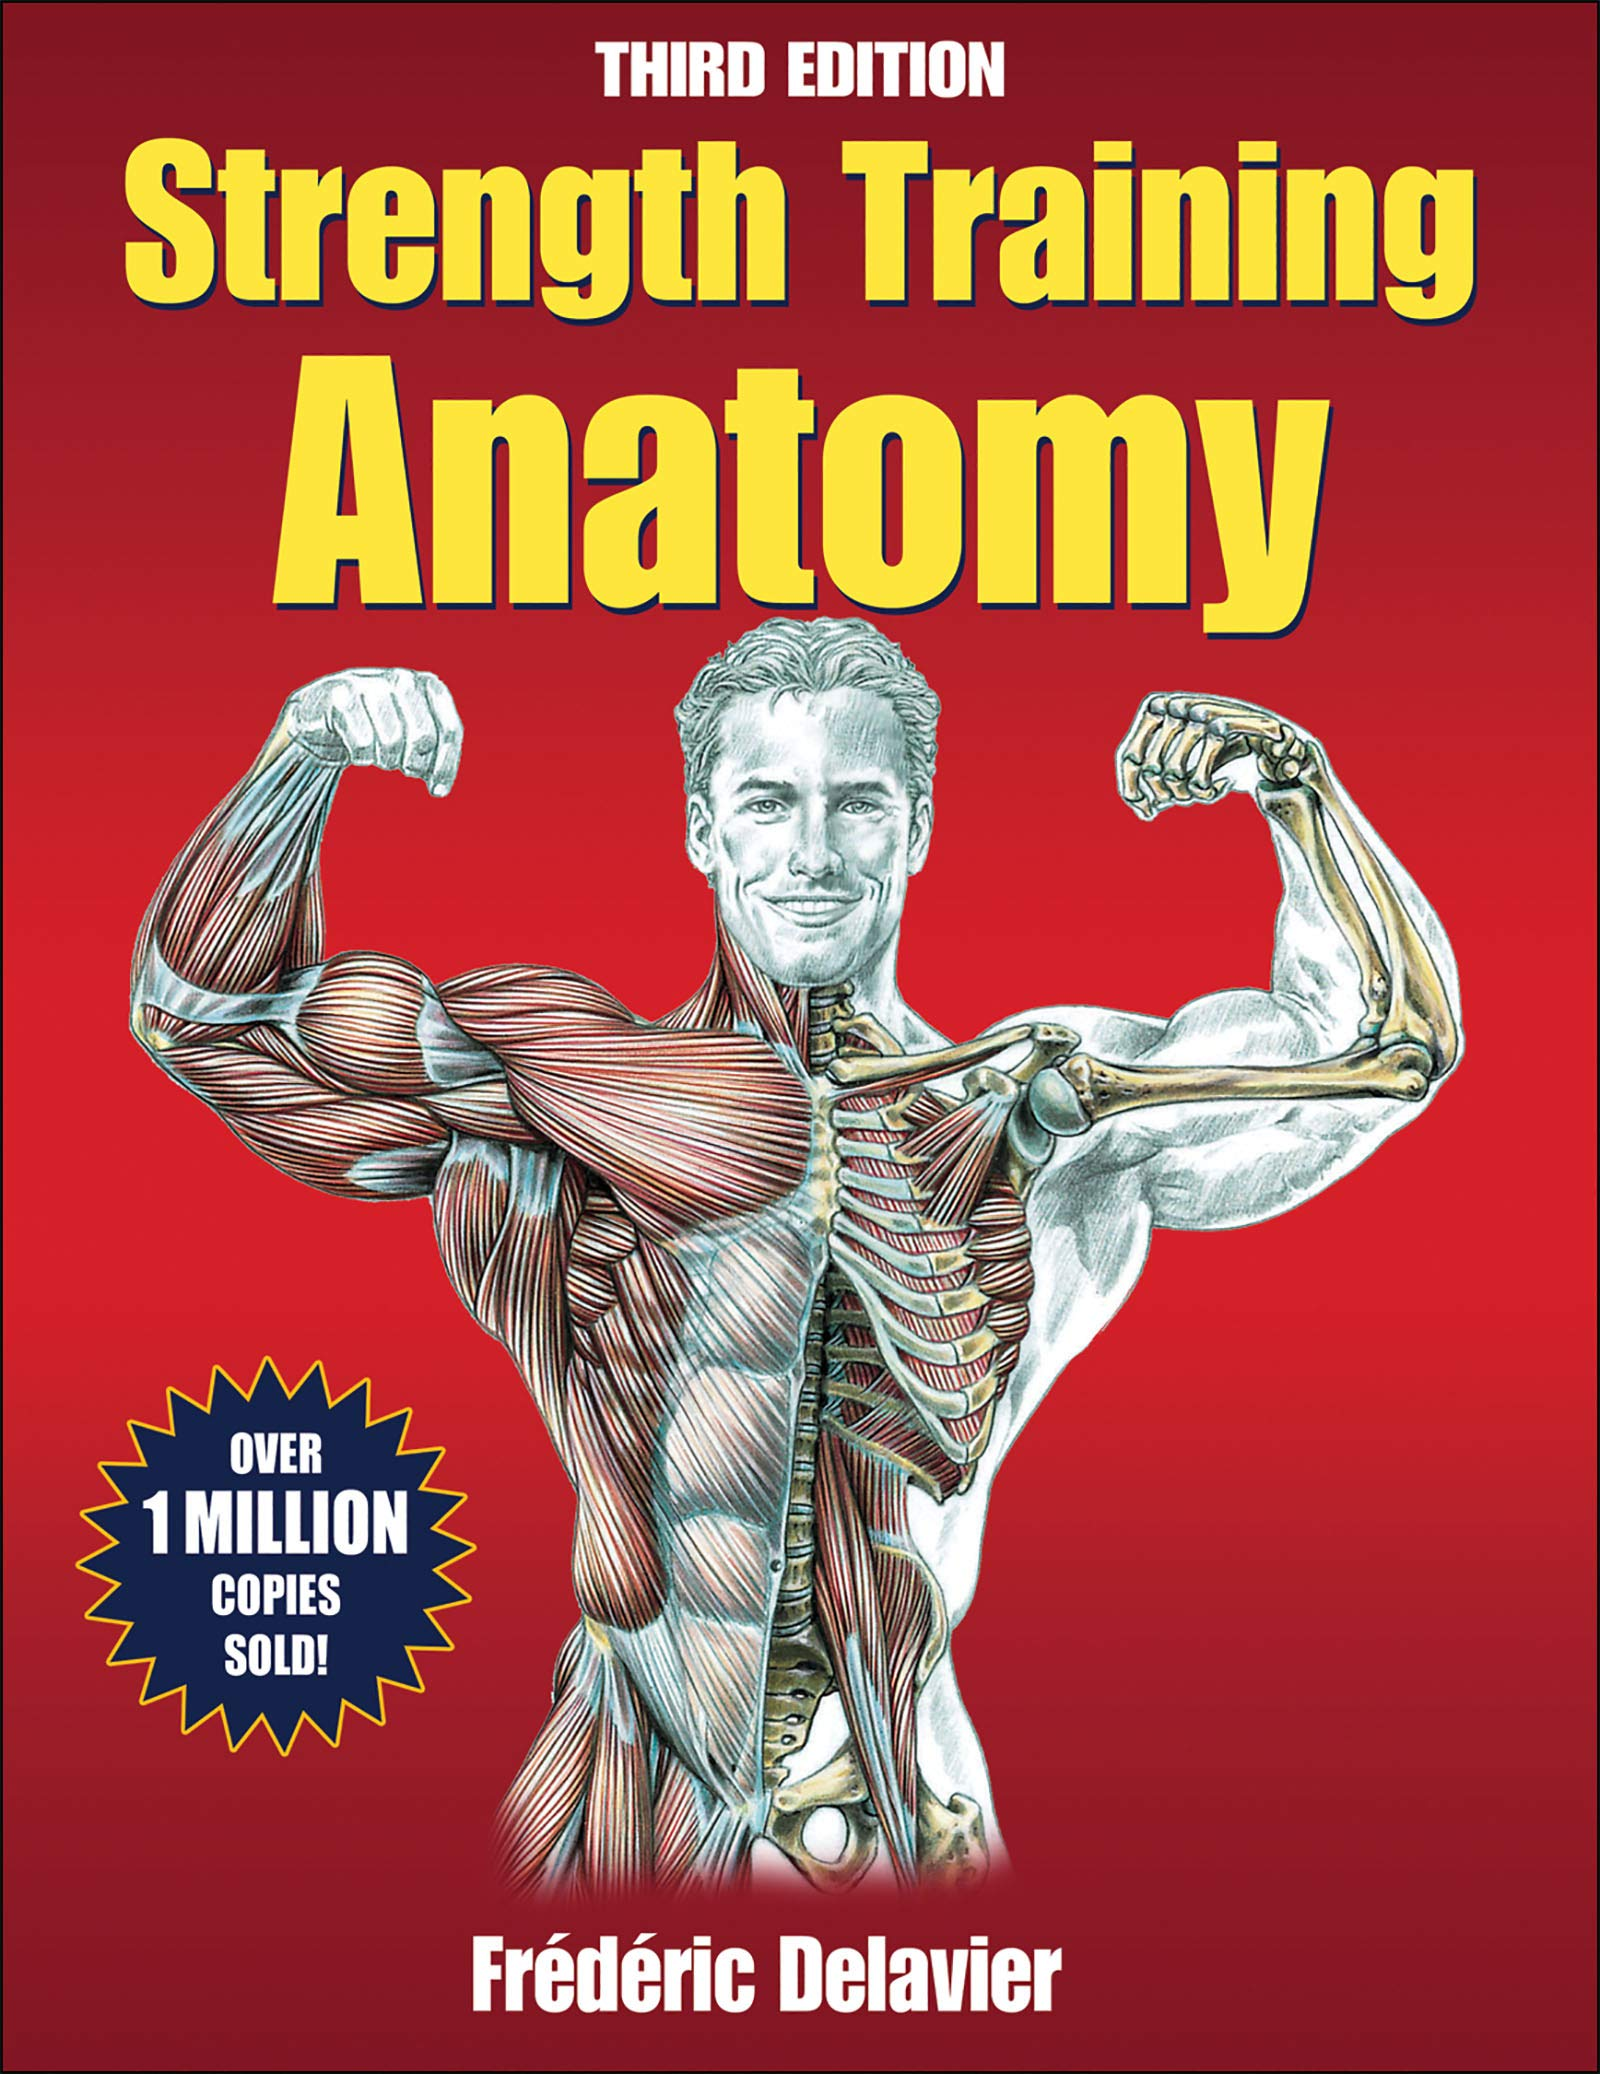 Strength Training Anatomy (Sports Anatomy): Amazon.co.uk: Frederic ...